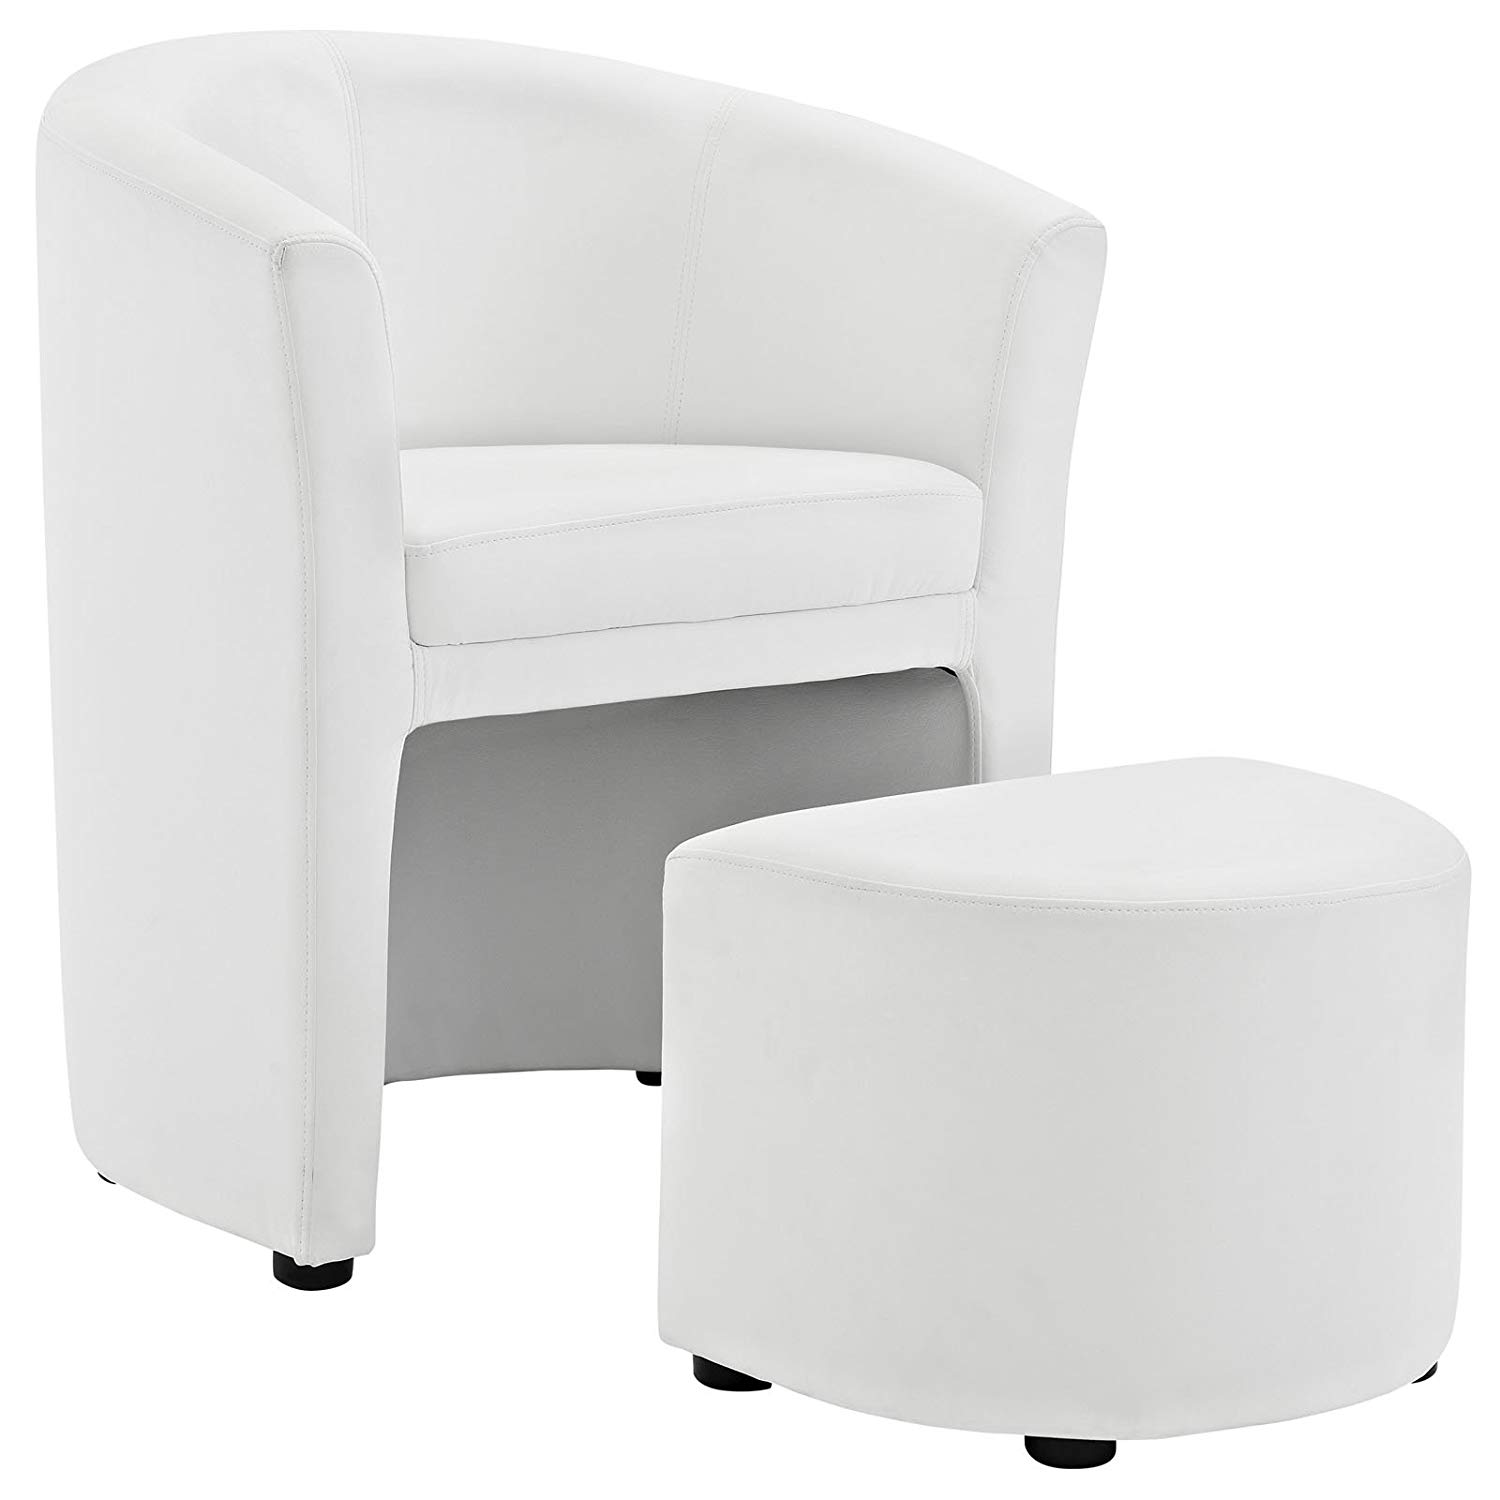 Traveller Location: Modway EEI-1407-WHI Divulge Faux Leather Accent Arm Lounge Chair  and Ottoman 2-Piece Set White: Kitchen & Dining